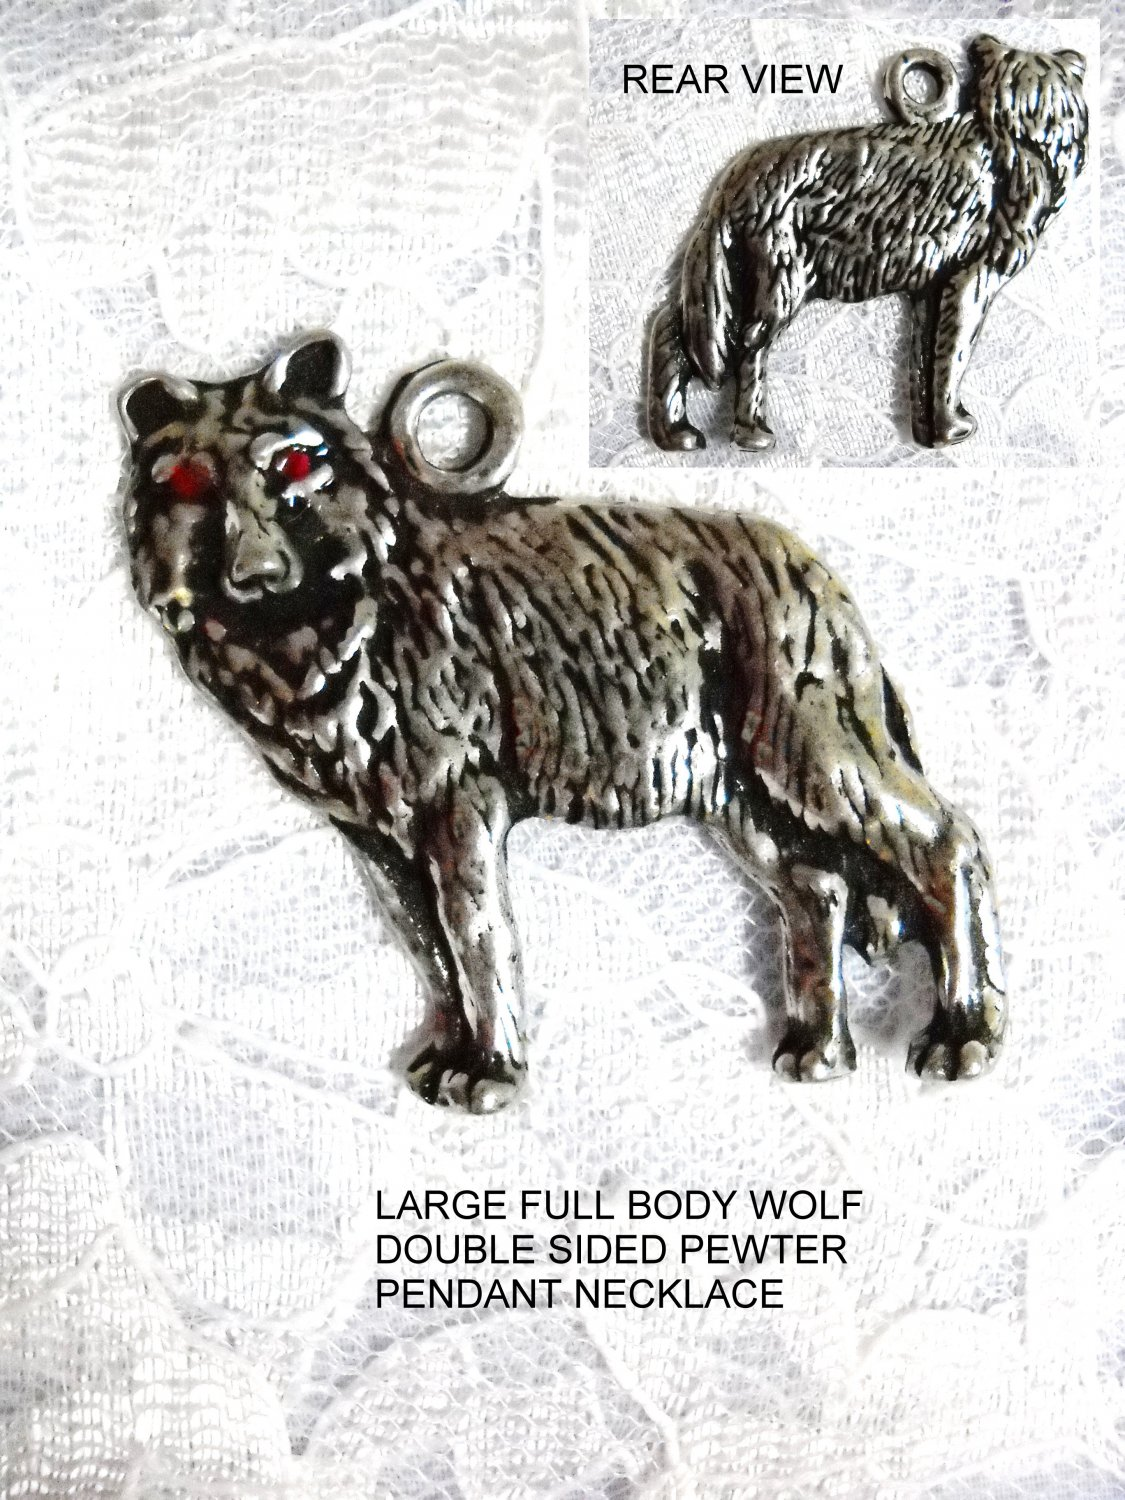 XL FULL BODY 2 SIDED NORTH AMERICAN GRAY WOLF ANIMAL USA PEWTER PENDANT NECKLACE